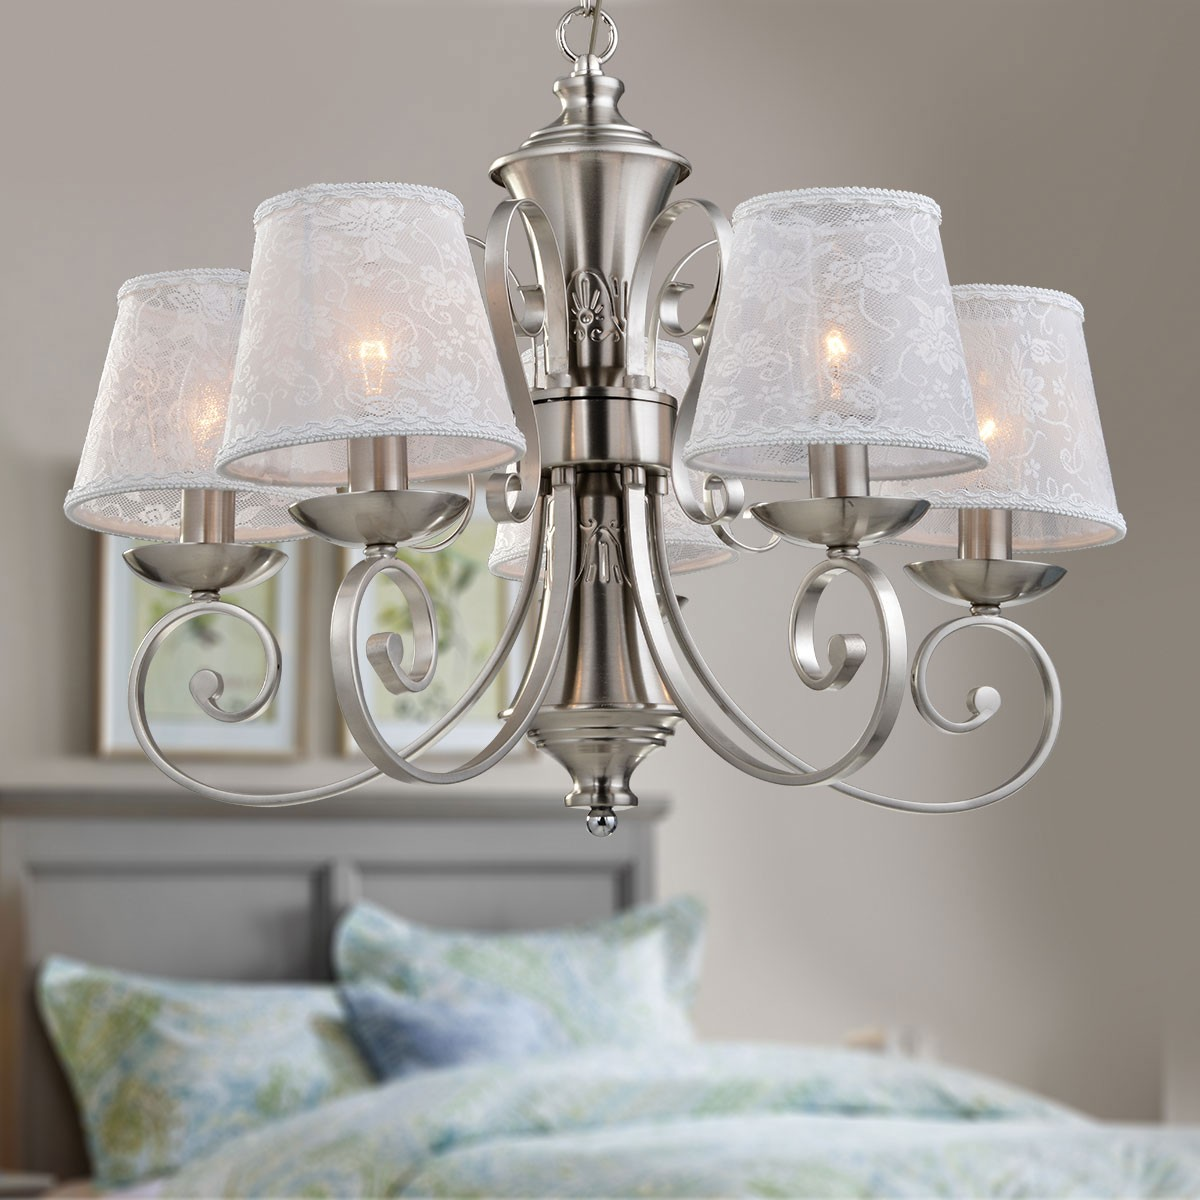 Canada Modern Lighting 5 Light Silver Iron Modern Chandelier With Fabric Shades